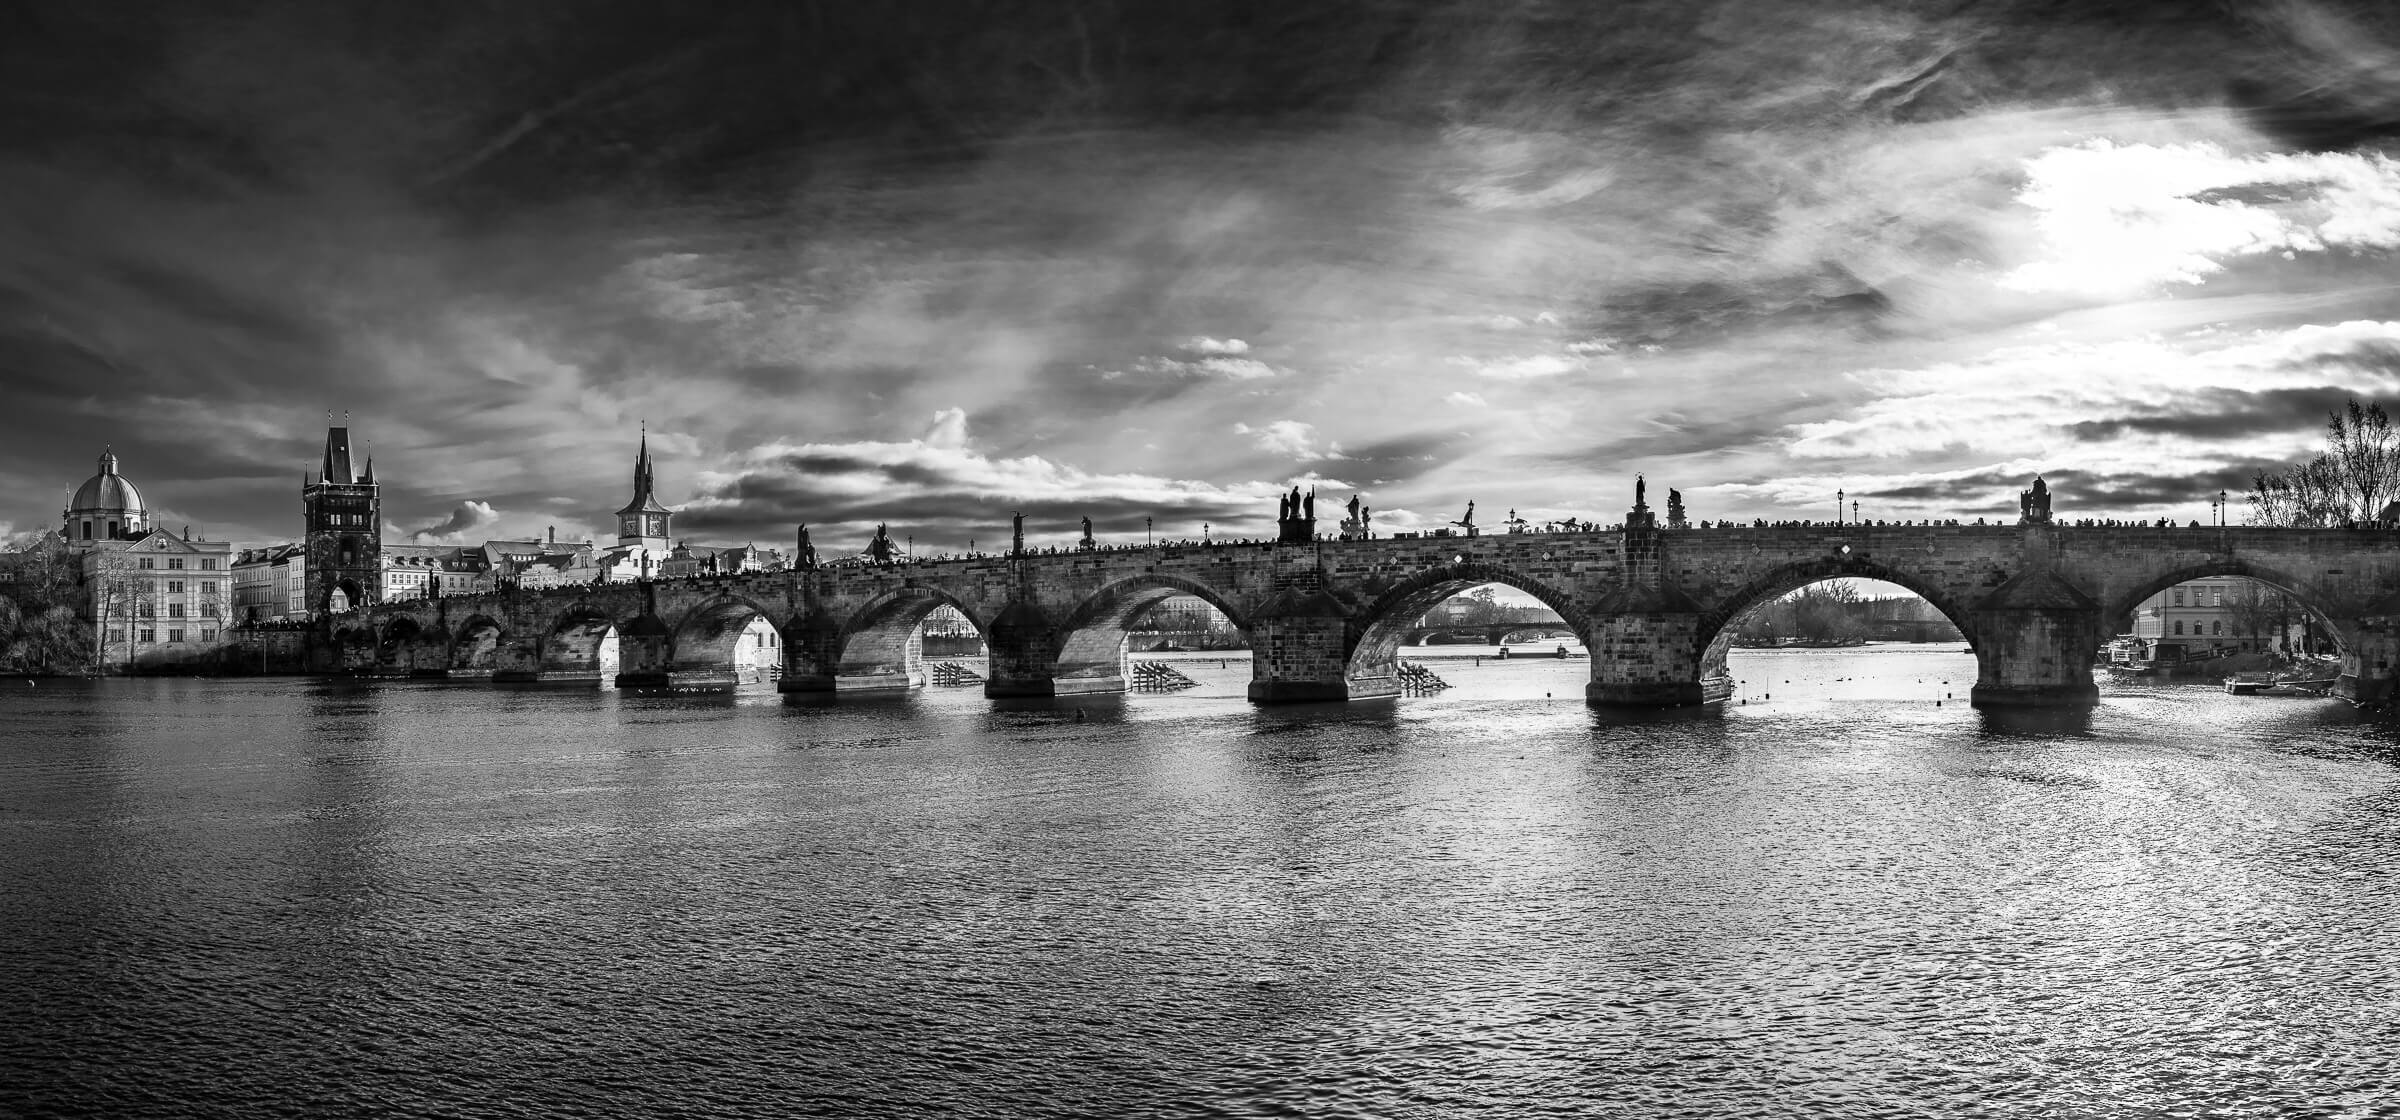 Black and White Photograph of the Charles Bridge, Prague, Czech Republic